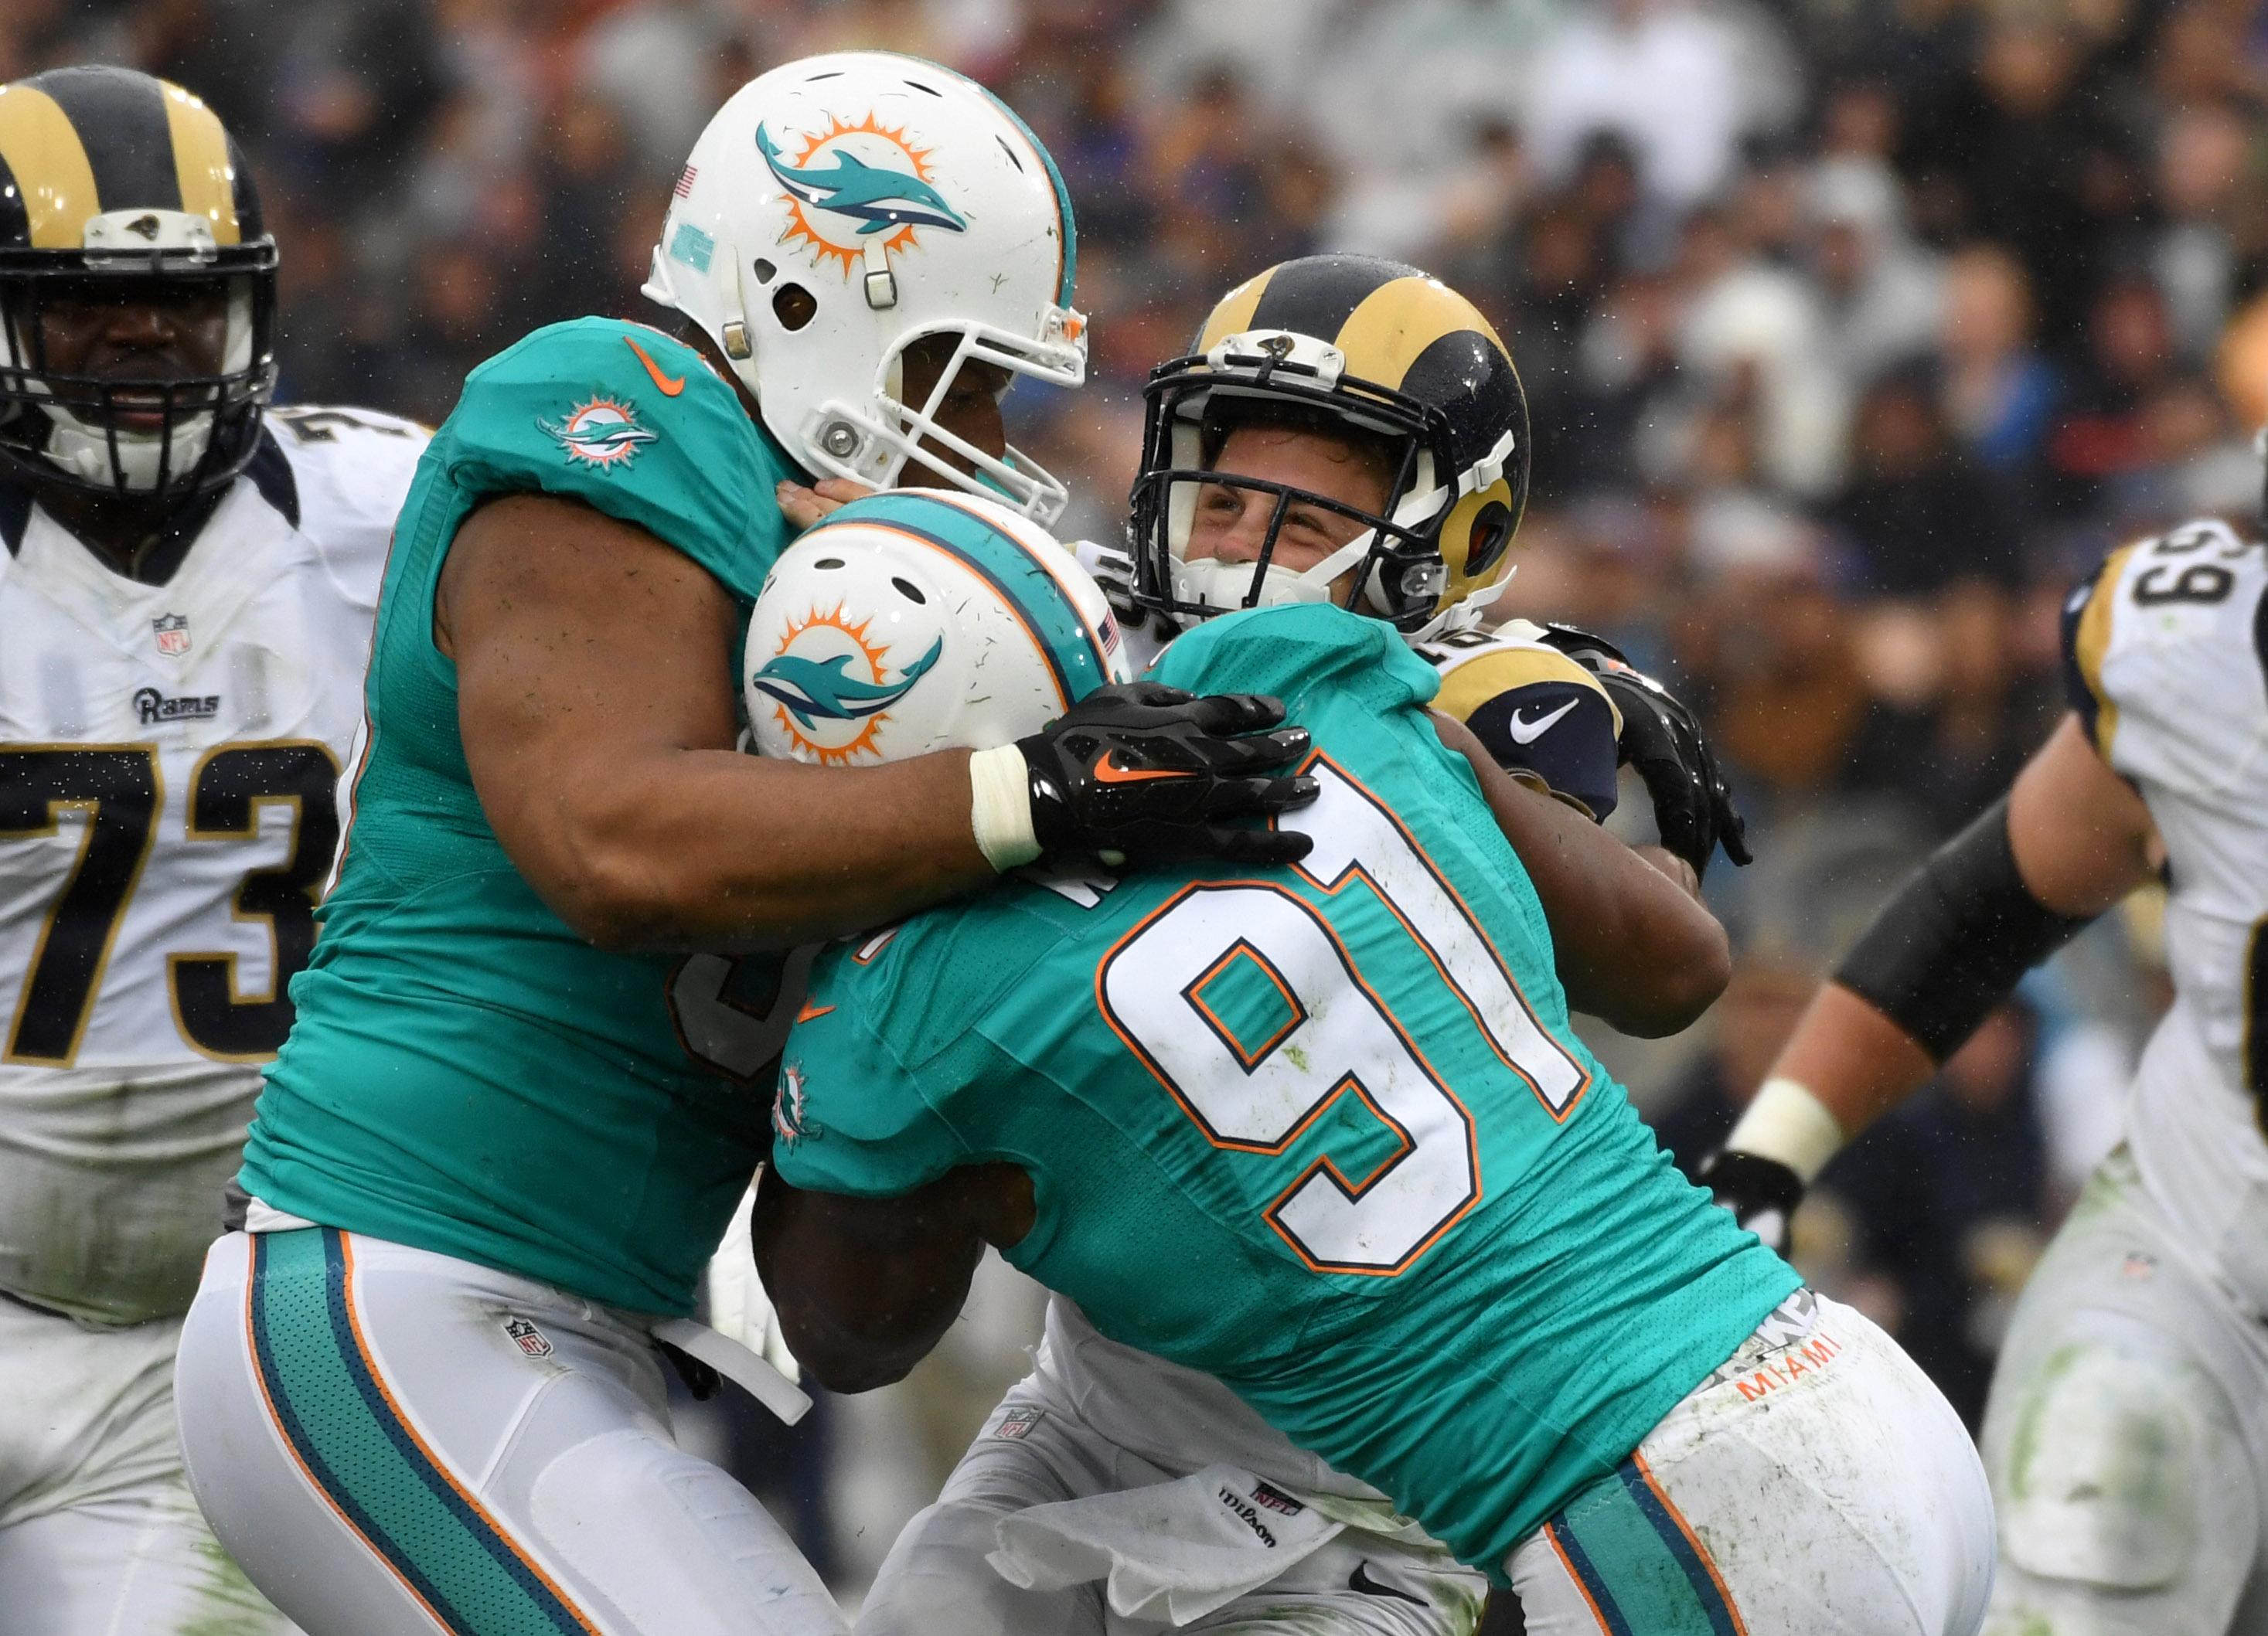 9694137-nfl-miami-dolphins-at-los-angeles-rams